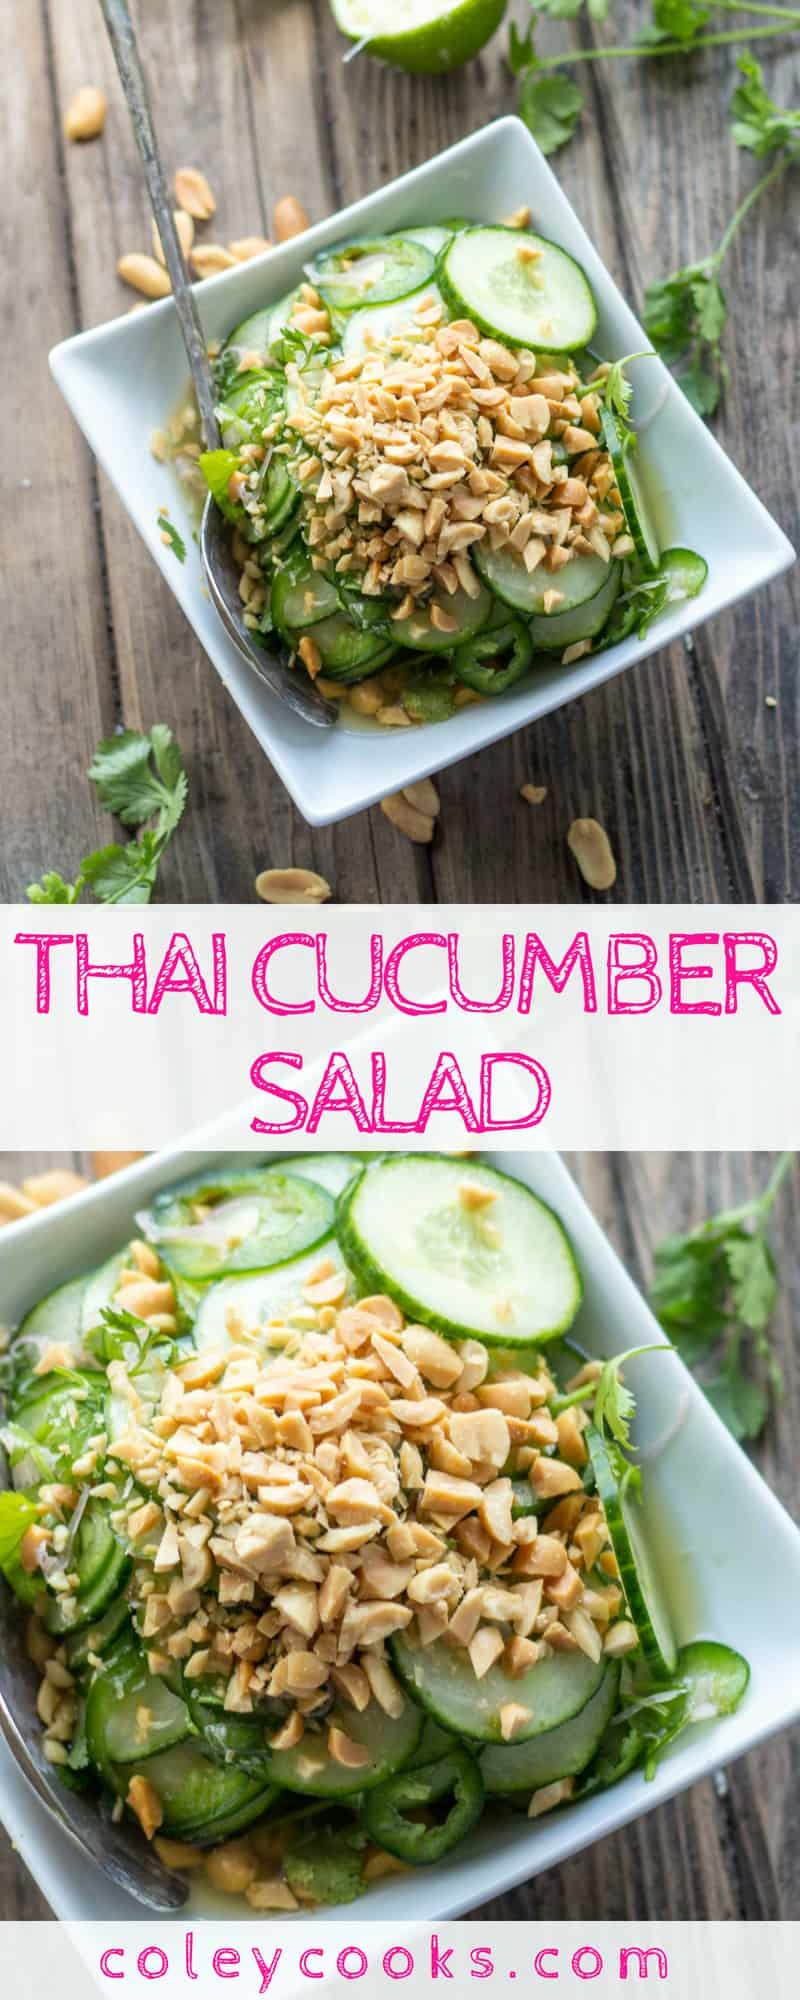 THAI CUCUMBER SALAD | This easy summer salad recipe is light, crisp, and loaded with Thai flavor! Spicy from jalapeños and great crunch from roasted peanuts. #plantbased #recipe #Thai #cucumber #salad #summer | ColeyCooks.com